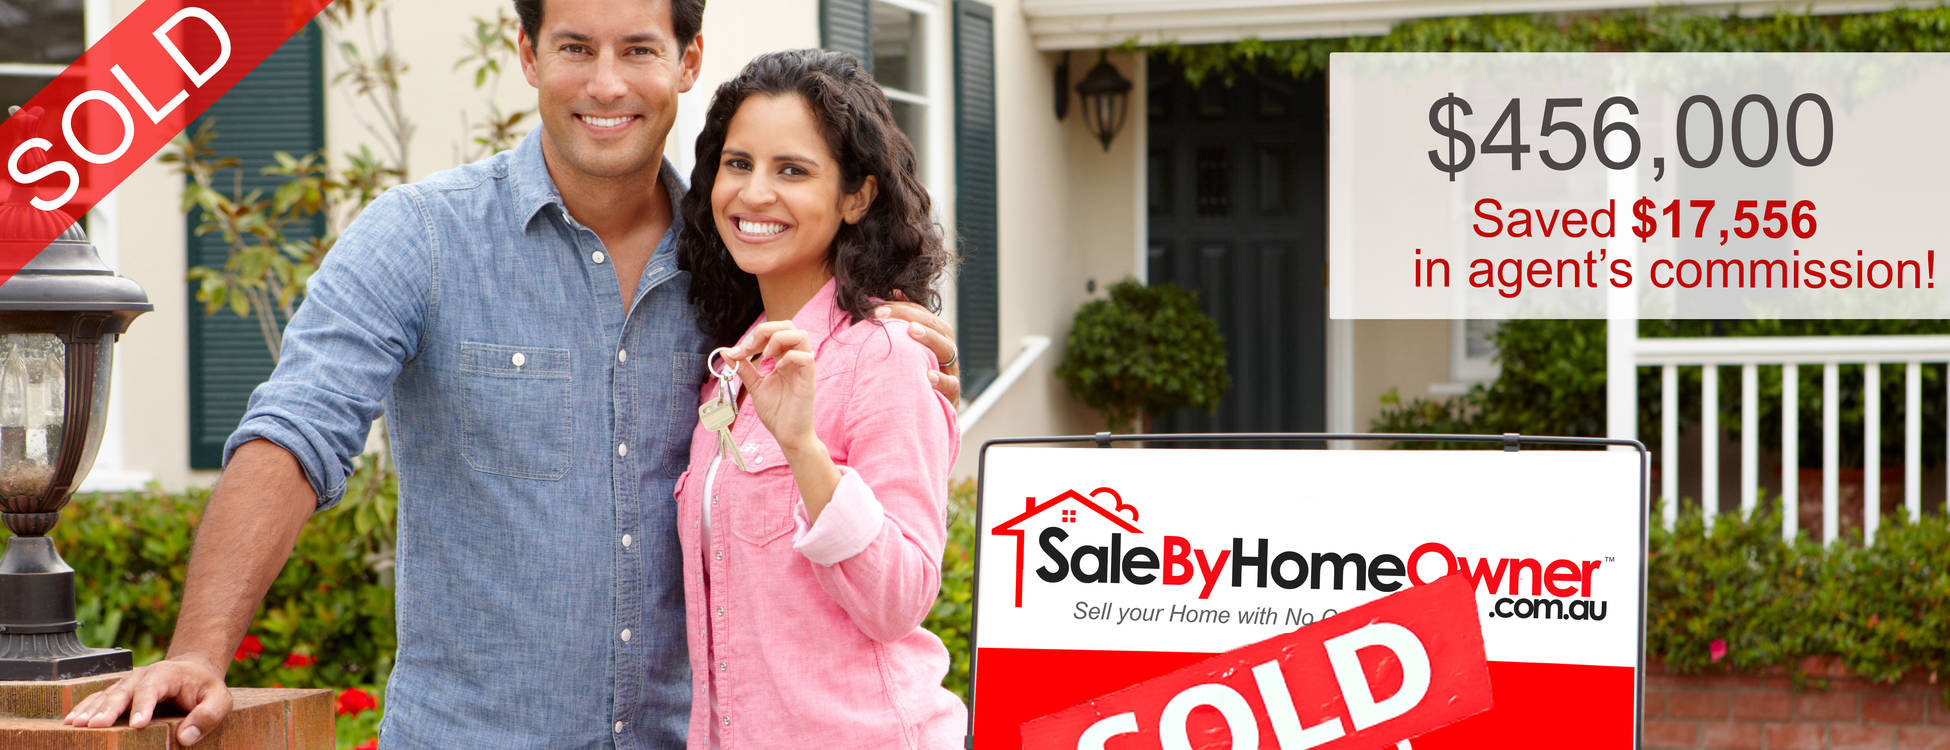 Sell your own Home